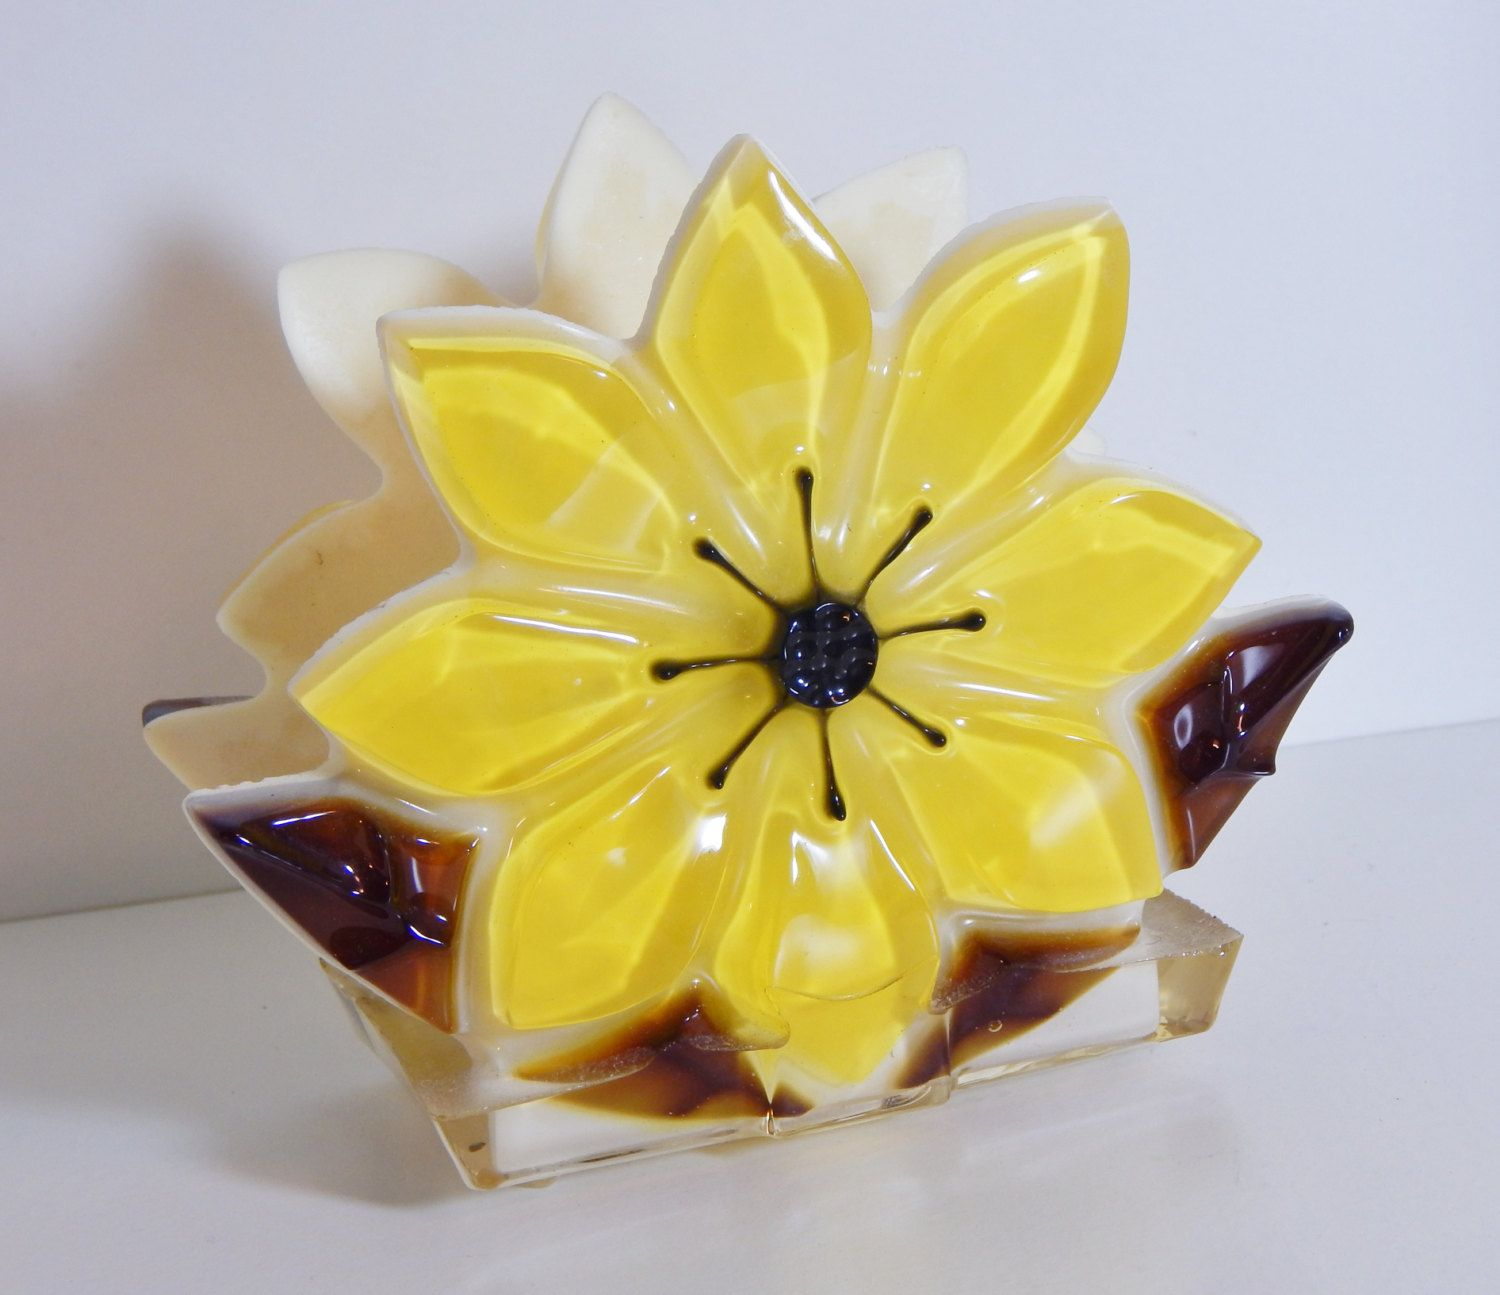 Vintage Napkin Holder Sunflower Mid Century Kitchen Decor Thick Lucite Yellow Brown Eyed Susan Flower Howard S House Of Cards Fitchburg Ma By